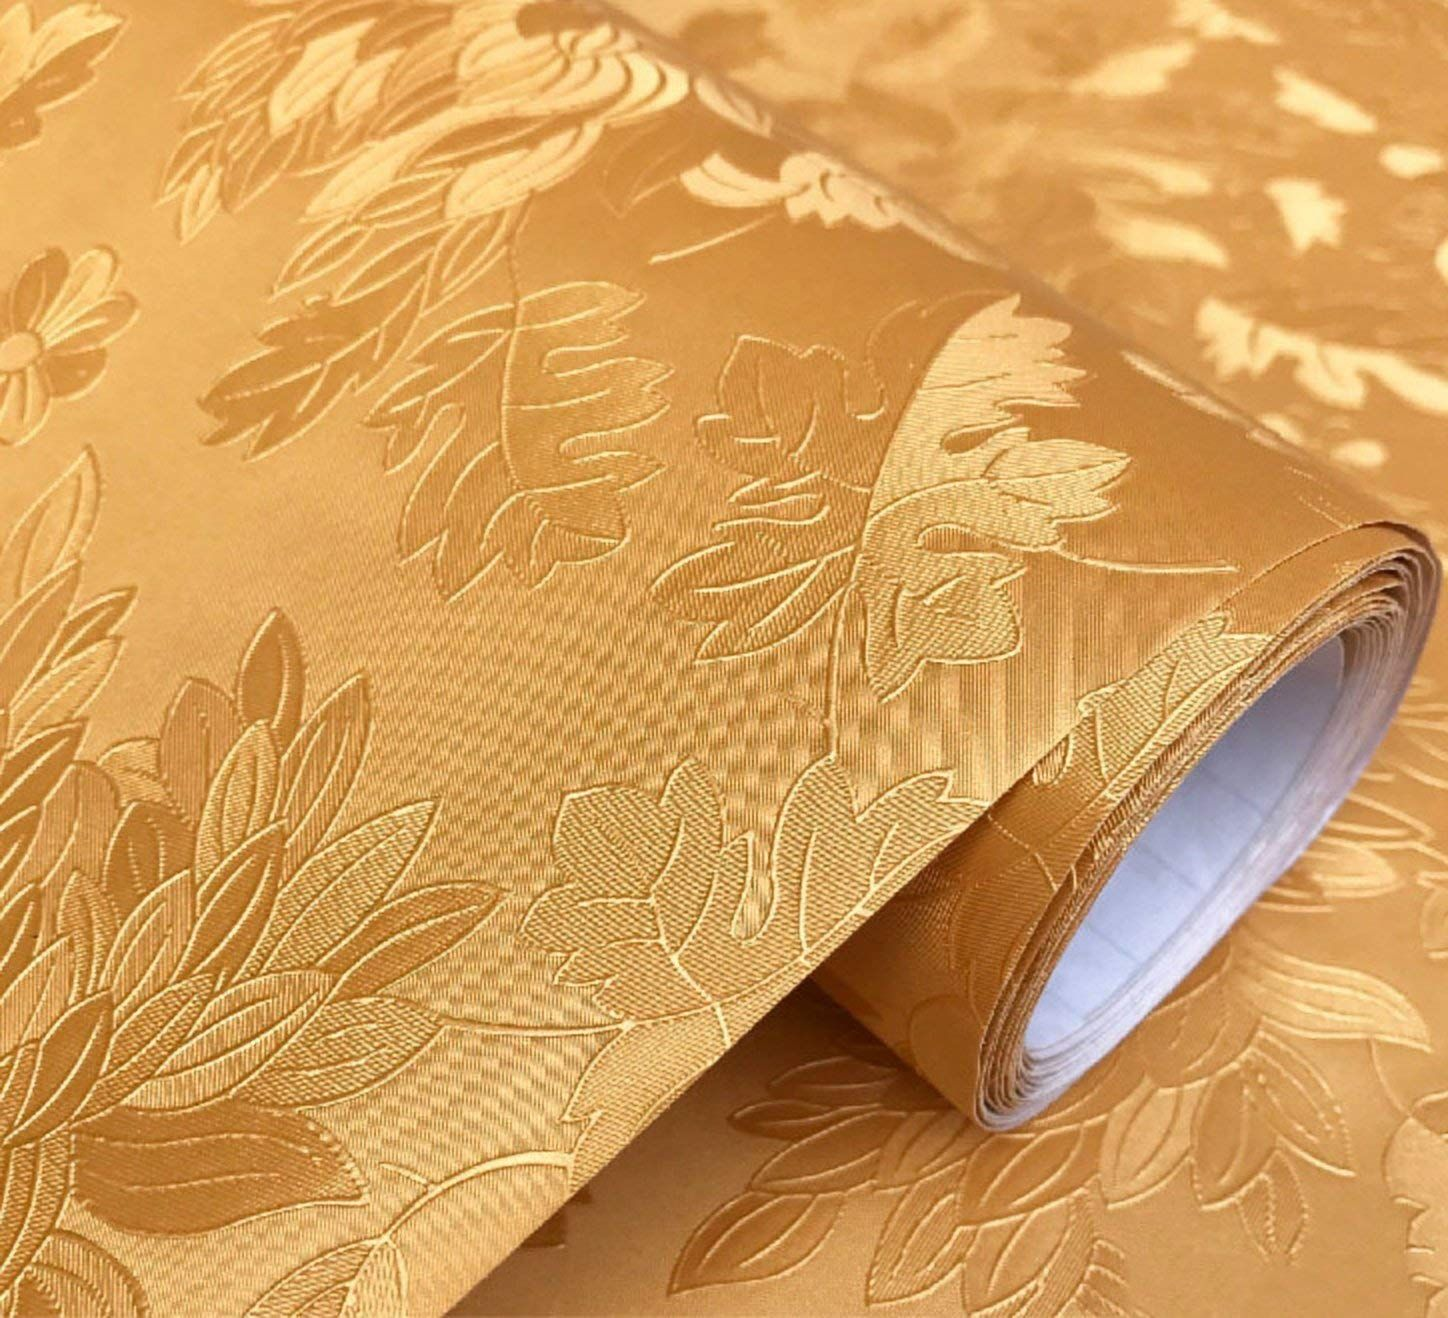 Wow Interiors Golden Peony Roses Royal Peel And Stick Self Adhesive Wallpaper Easily Removable In 2020 Self Adhesive Wallpaper Wallpaper Stickers Wallpaper